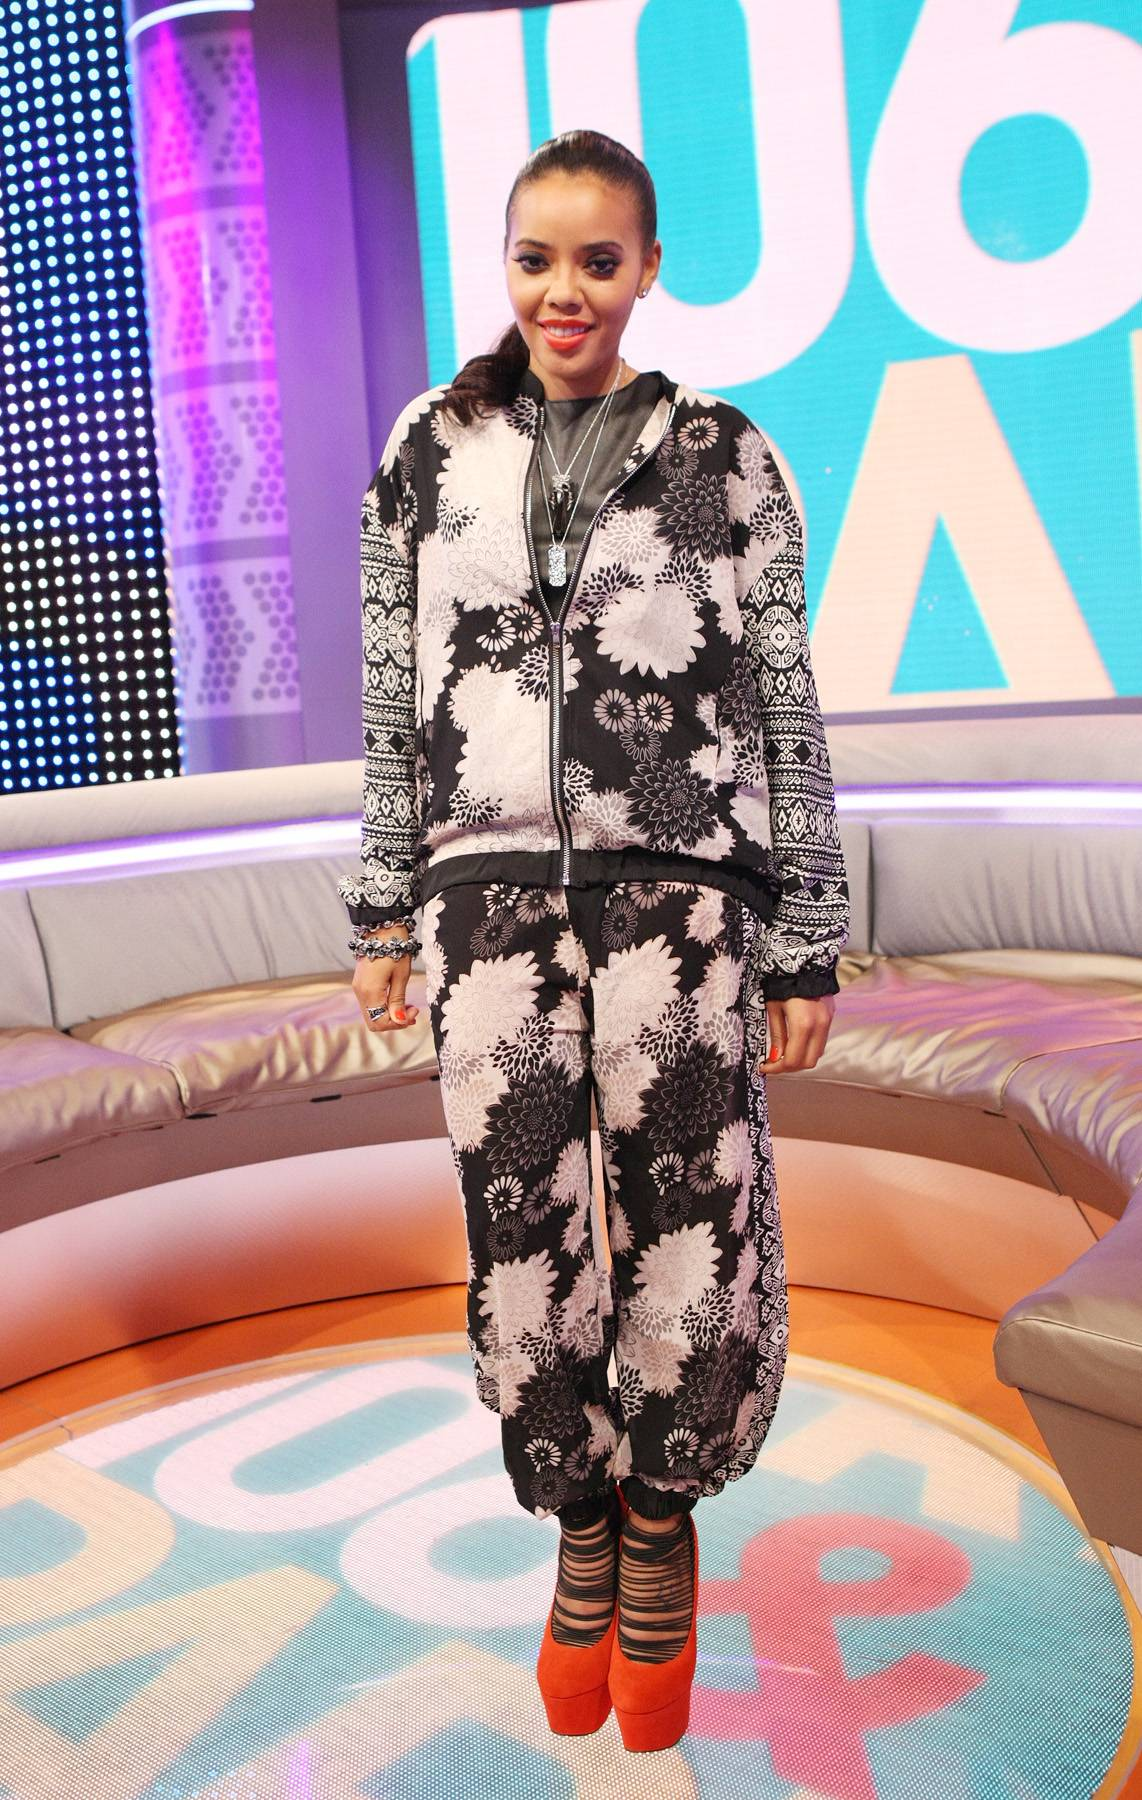 Work Out Plan - With a dope red shoe and a floral and tribal print black-and-white sweat suit, Angela dresses up a casual outfit and put us on to a new trend. (Photo: Bennett Raglin/BET/Getty Images for BET)